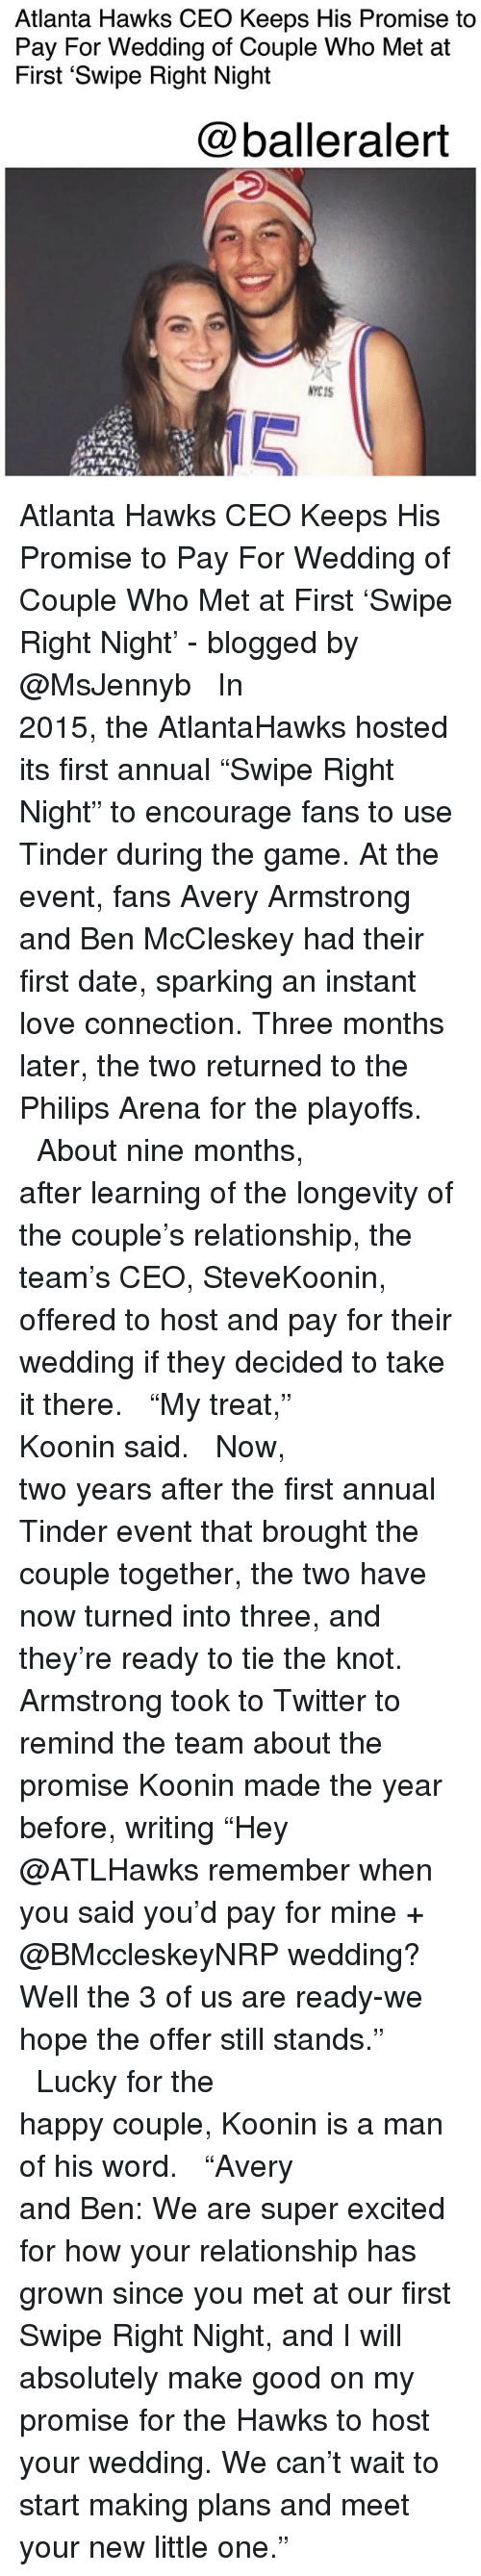 """annuale: Atlanta Hawks CEO Keeps His Promise to  Pay For Wedding of Couple Who Met at  First 'Swipe Right Night  @balleralert  NYCIS  10 Atlanta Hawks CEO Keeps His Promise to Pay For Wedding of Couple Who Met at First 'Swipe Right Night' - blogged by @MsJennyb ⠀⠀⠀⠀⠀⠀⠀⠀⠀ ⠀⠀⠀⠀⠀⠀⠀⠀⠀ In 2015, the AtlantaHawks hosted its first annual """"Swipe Right Night"""" to encourage fans to use Tinder during the game. At the event, fans Avery Armstrong and Ben McCleskey had their first date, sparking an instant love connection. Three months later, the two returned to the Philips Arena for the playoffs. ⠀⠀⠀⠀⠀⠀⠀⠀⠀ ⠀⠀⠀⠀⠀⠀⠀⠀⠀ About nine months, after learning of the longevity of the couple's relationship, the team's CEO, SteveKoonin, offered to host and pay for their wedding if they decided to take it there. ⠀⠀⠀⠀⠀⠀⠀⠀⠀ ⠀⠀⠀⠀⠀⠀⠀⠀⠀ """"My treat,"""" Koonin said. ⠀⠀⠀⠀⠀⠀⠀⠀⠀ ⠀⠀⠀⠀⠀⠀⠀⠀⠀ Now, two years after the first annual Tinder event that brought the couple together, the two have now turned into three, and they're ready to tie the knot. Armstrong took to Twitter to remind the team about the promise Koonin made the year before, writing """"Hey @ATLHawks remember when you said you'd pay for mine + @BMccleskeyNRP wedding? Well the 3 of us are ready-we hope the offer still stands."""" ⠀⠀⠀⠀⠀⠀⠀⠀⠀ ⠀⠀⠀⠀⠀⠀⠀⠀⠀ Lucky for the happy couple, Koonin is a man of his word. ⠀⠀⠀⠀⠀⠀⠀⠀⠀ ⠀⠀⠀⠀⠀⠀⠀⠀⠀ """"Avery and Ben: We are super excited for how your relationship has grown since you met at our first Swipe Right Night, and I will absolutely make good on my promise for the Hawks to host your wedding. We can't wait to start making plans and meet your new little one."""""""